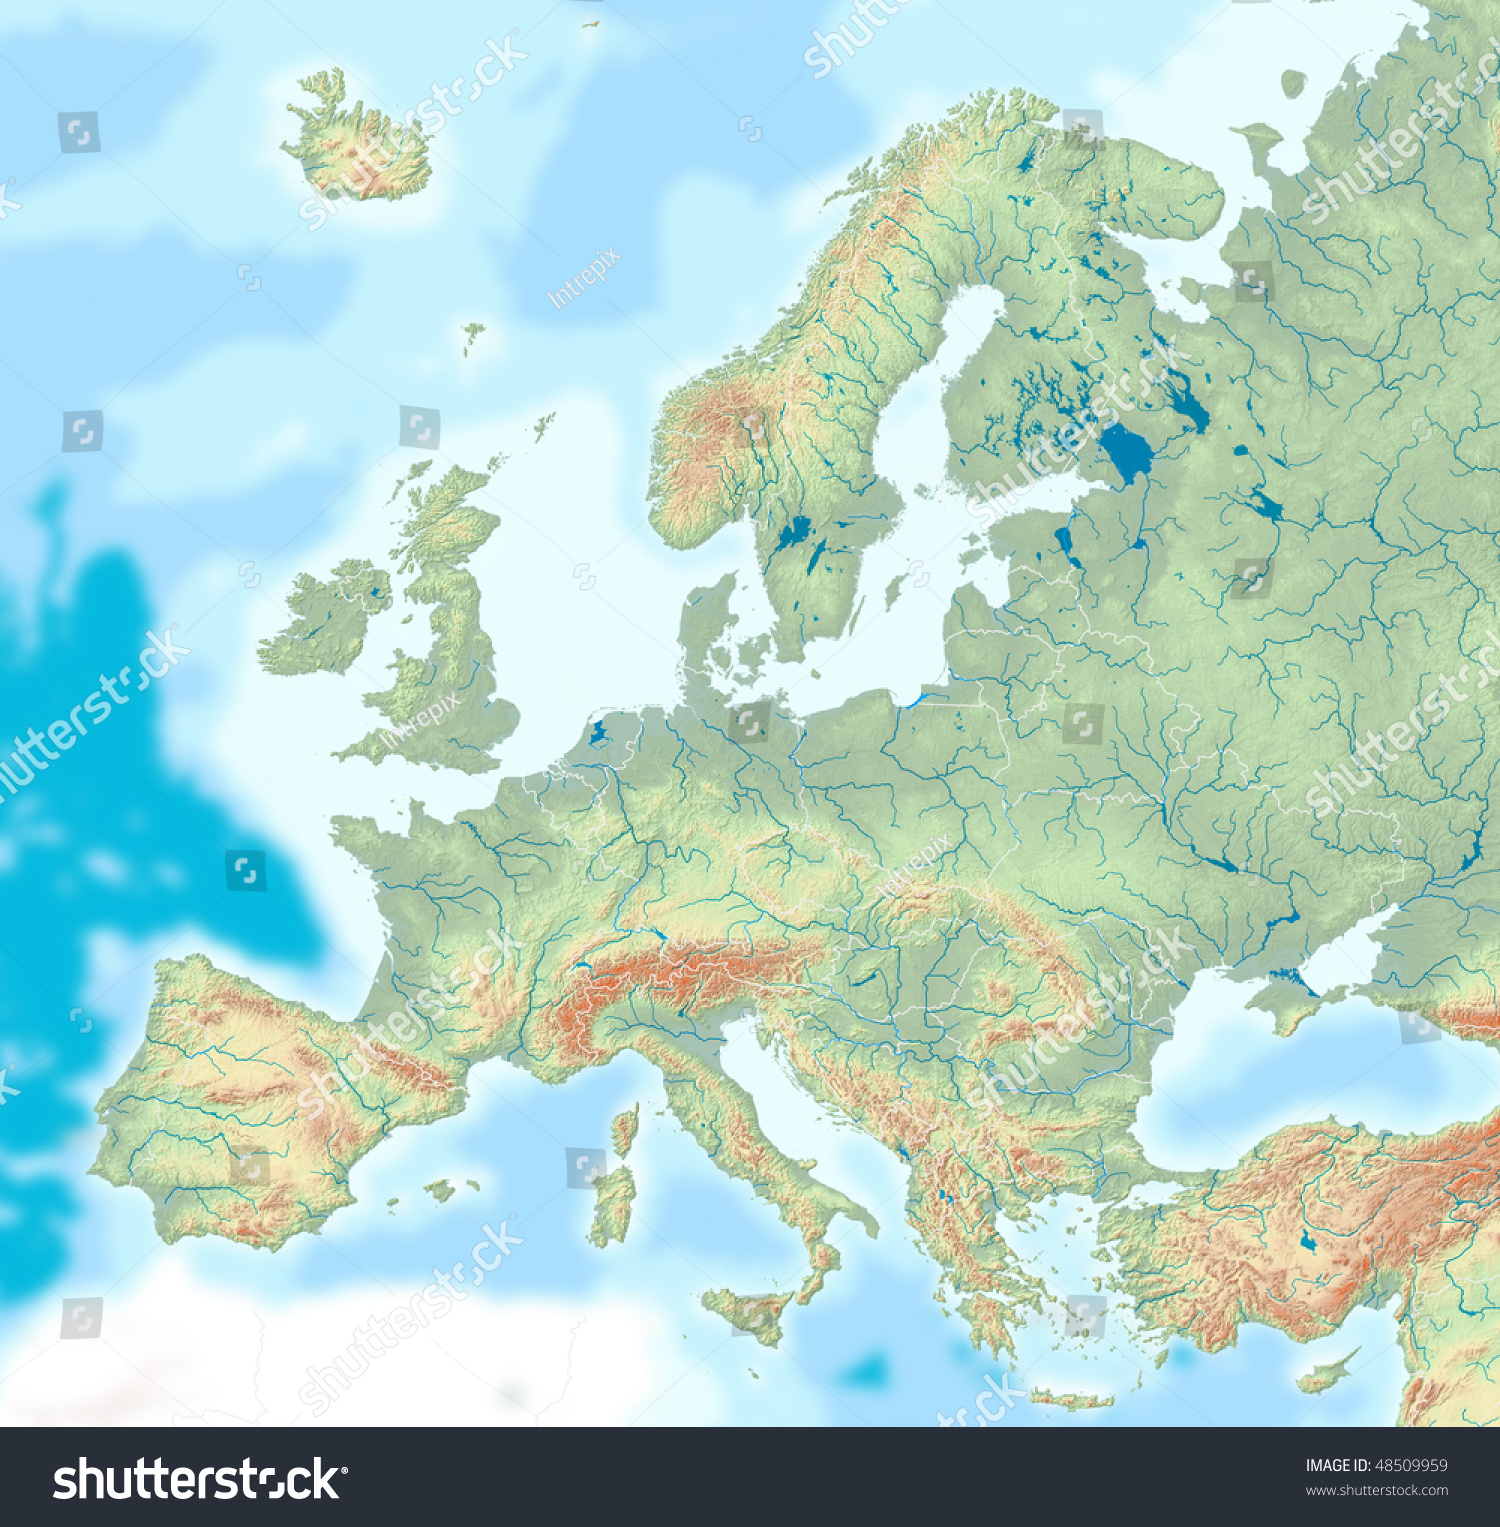 Map Europe Drainage Borders Relief Hypsometric Stock Illustration